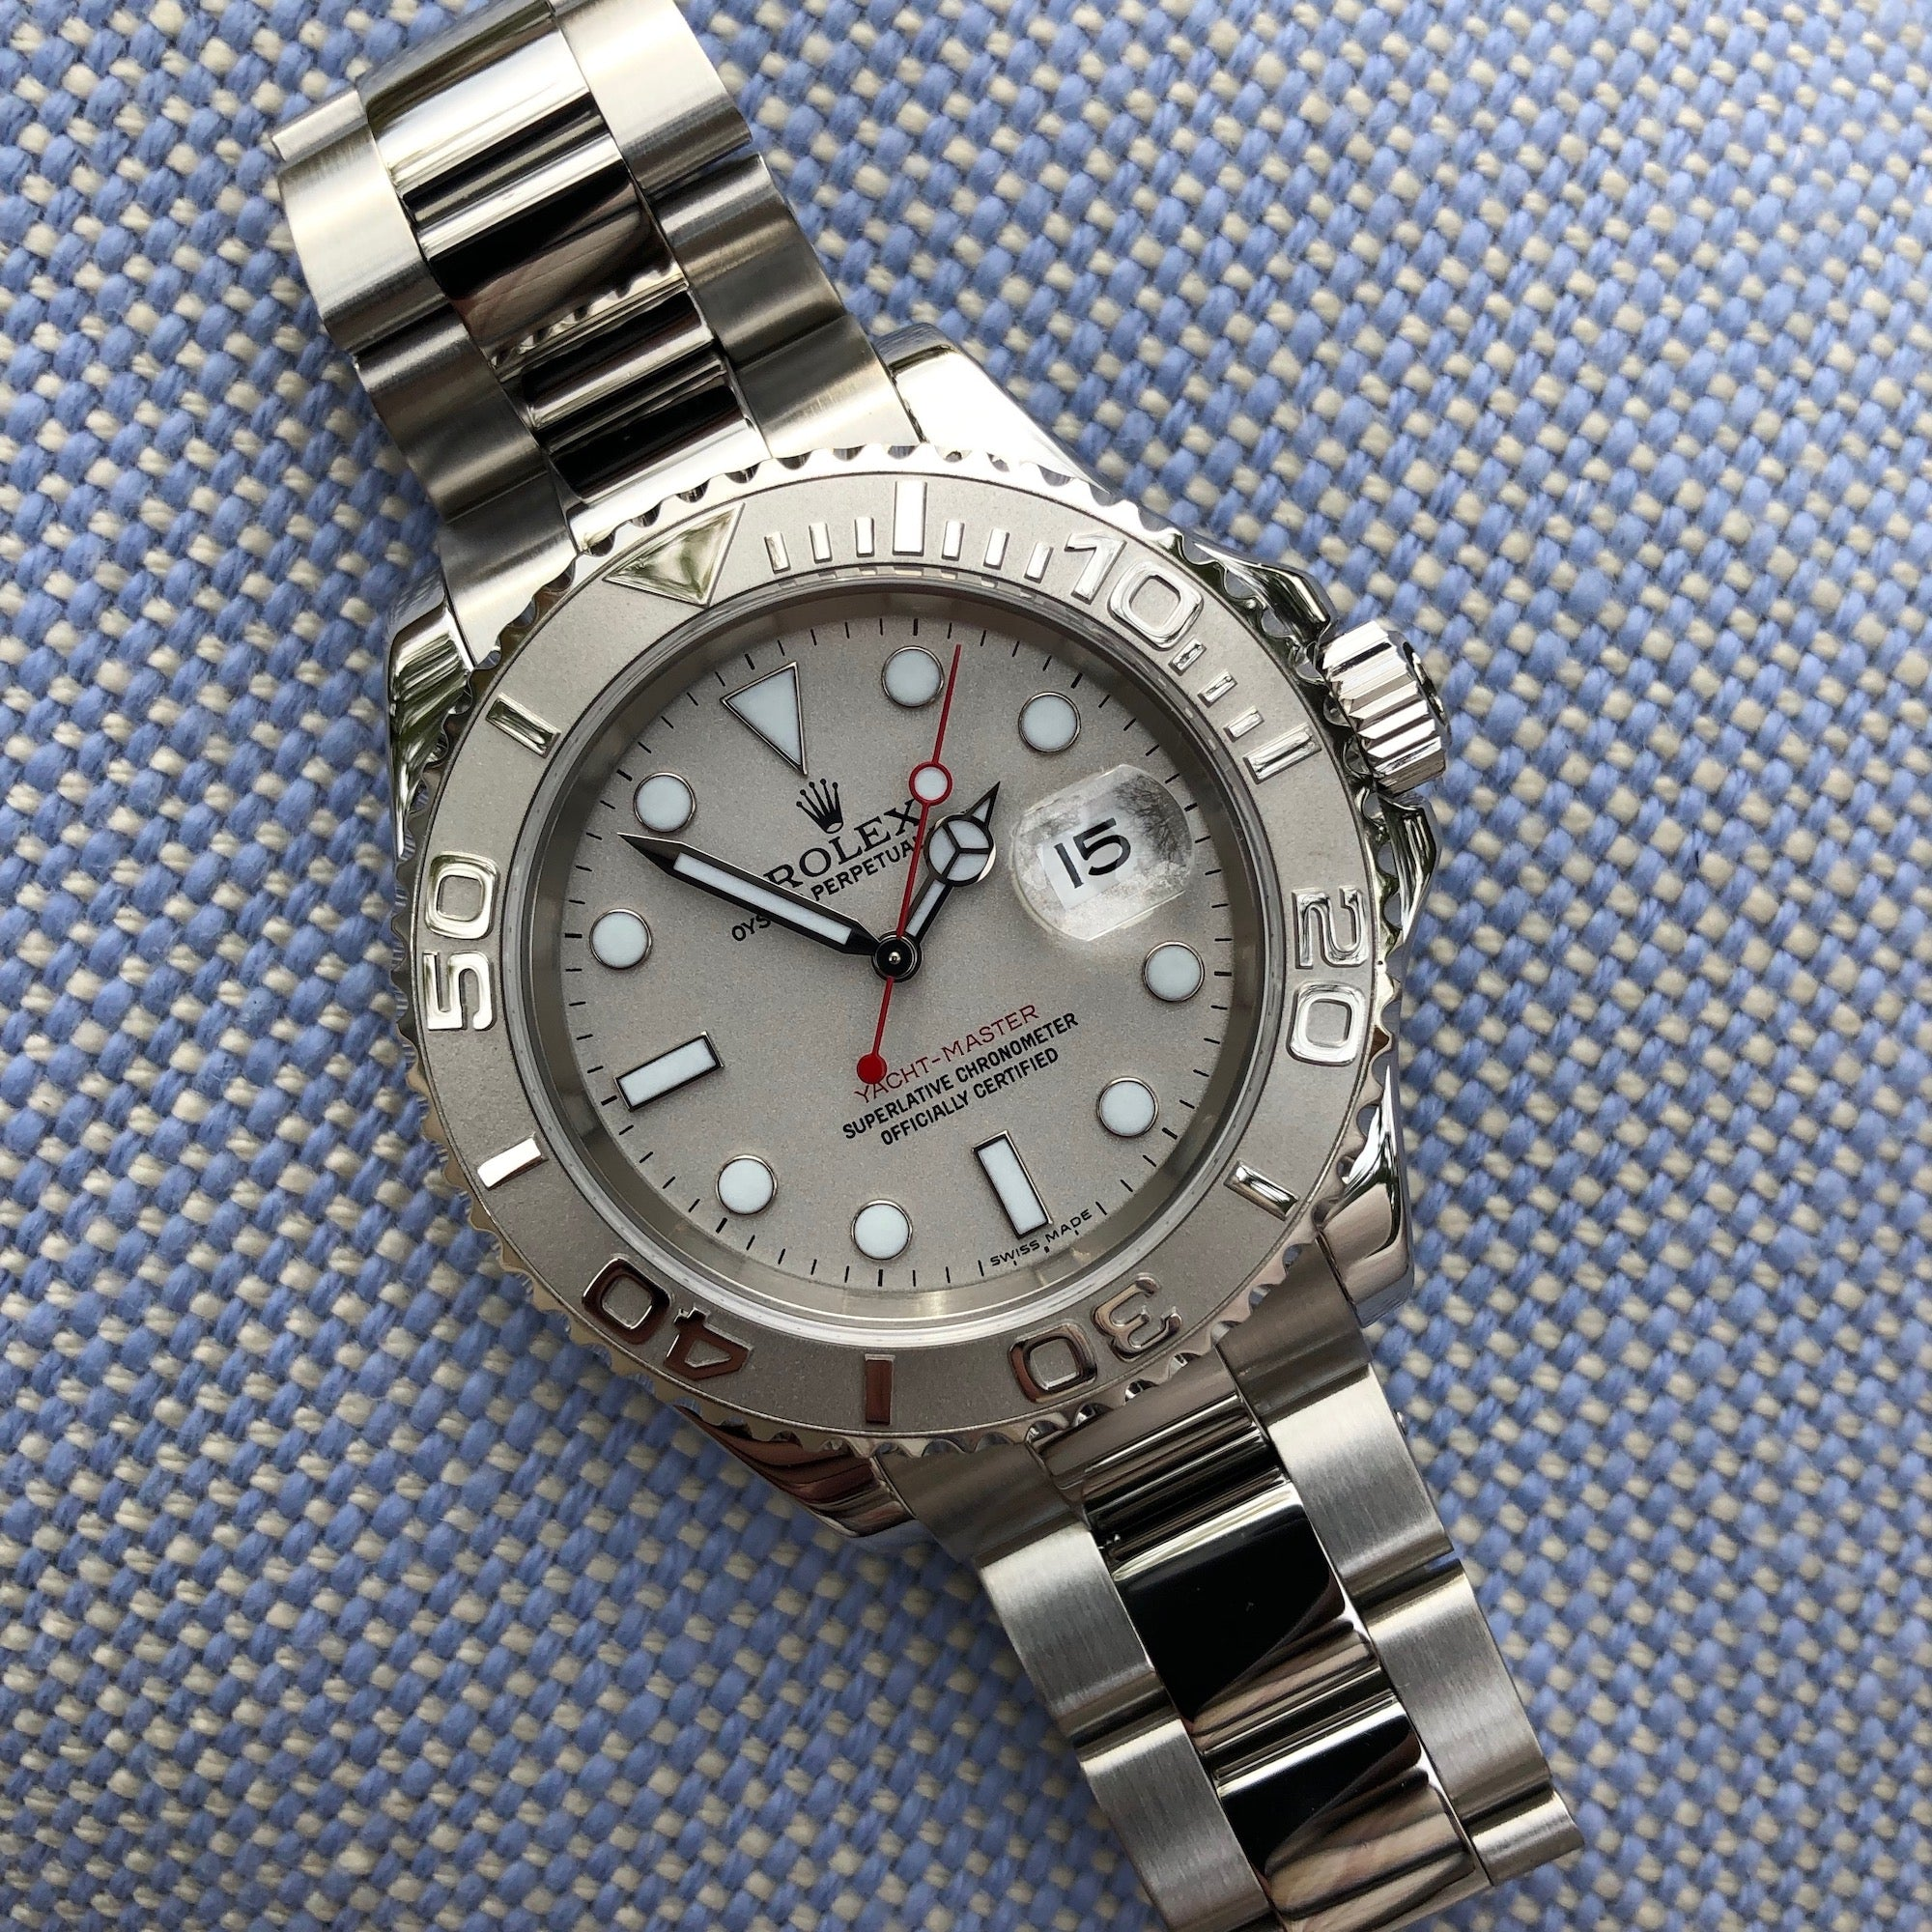 Rolex Yachtmaster 16622 Platinum 40mm Steel Oyster Z Serial Wristwatch Circa 2006 - Hashtag Watch Company